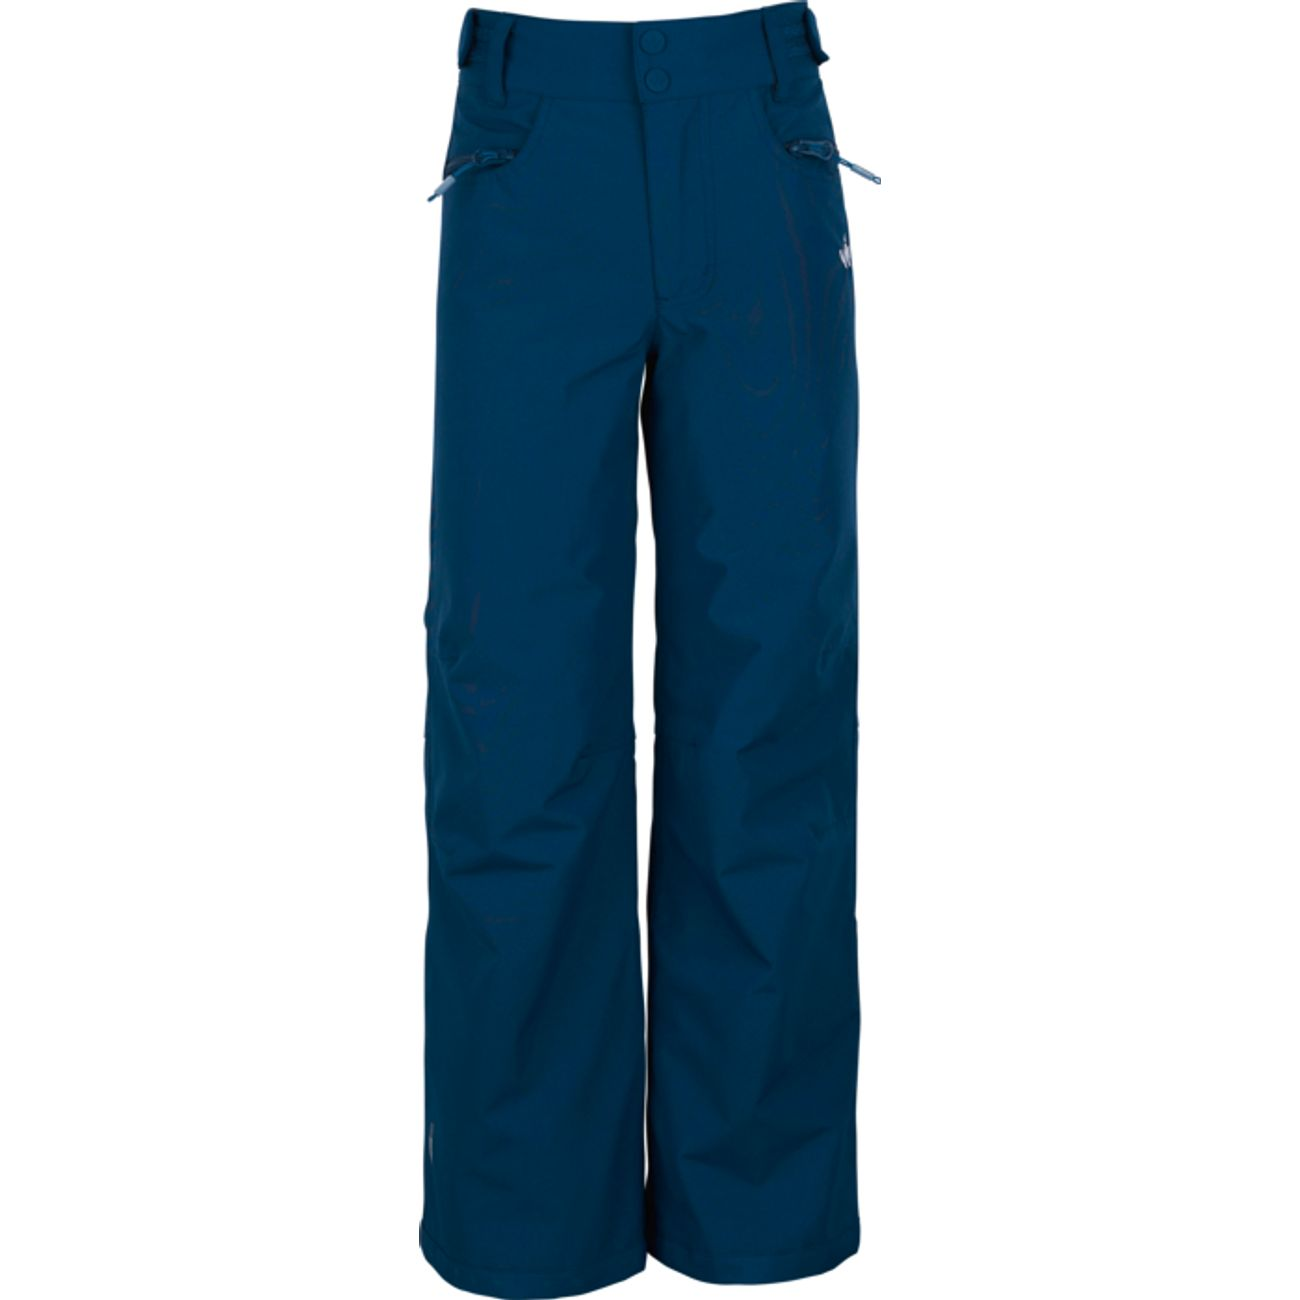 PANTALON Ski junior WANABEE NOVA 500